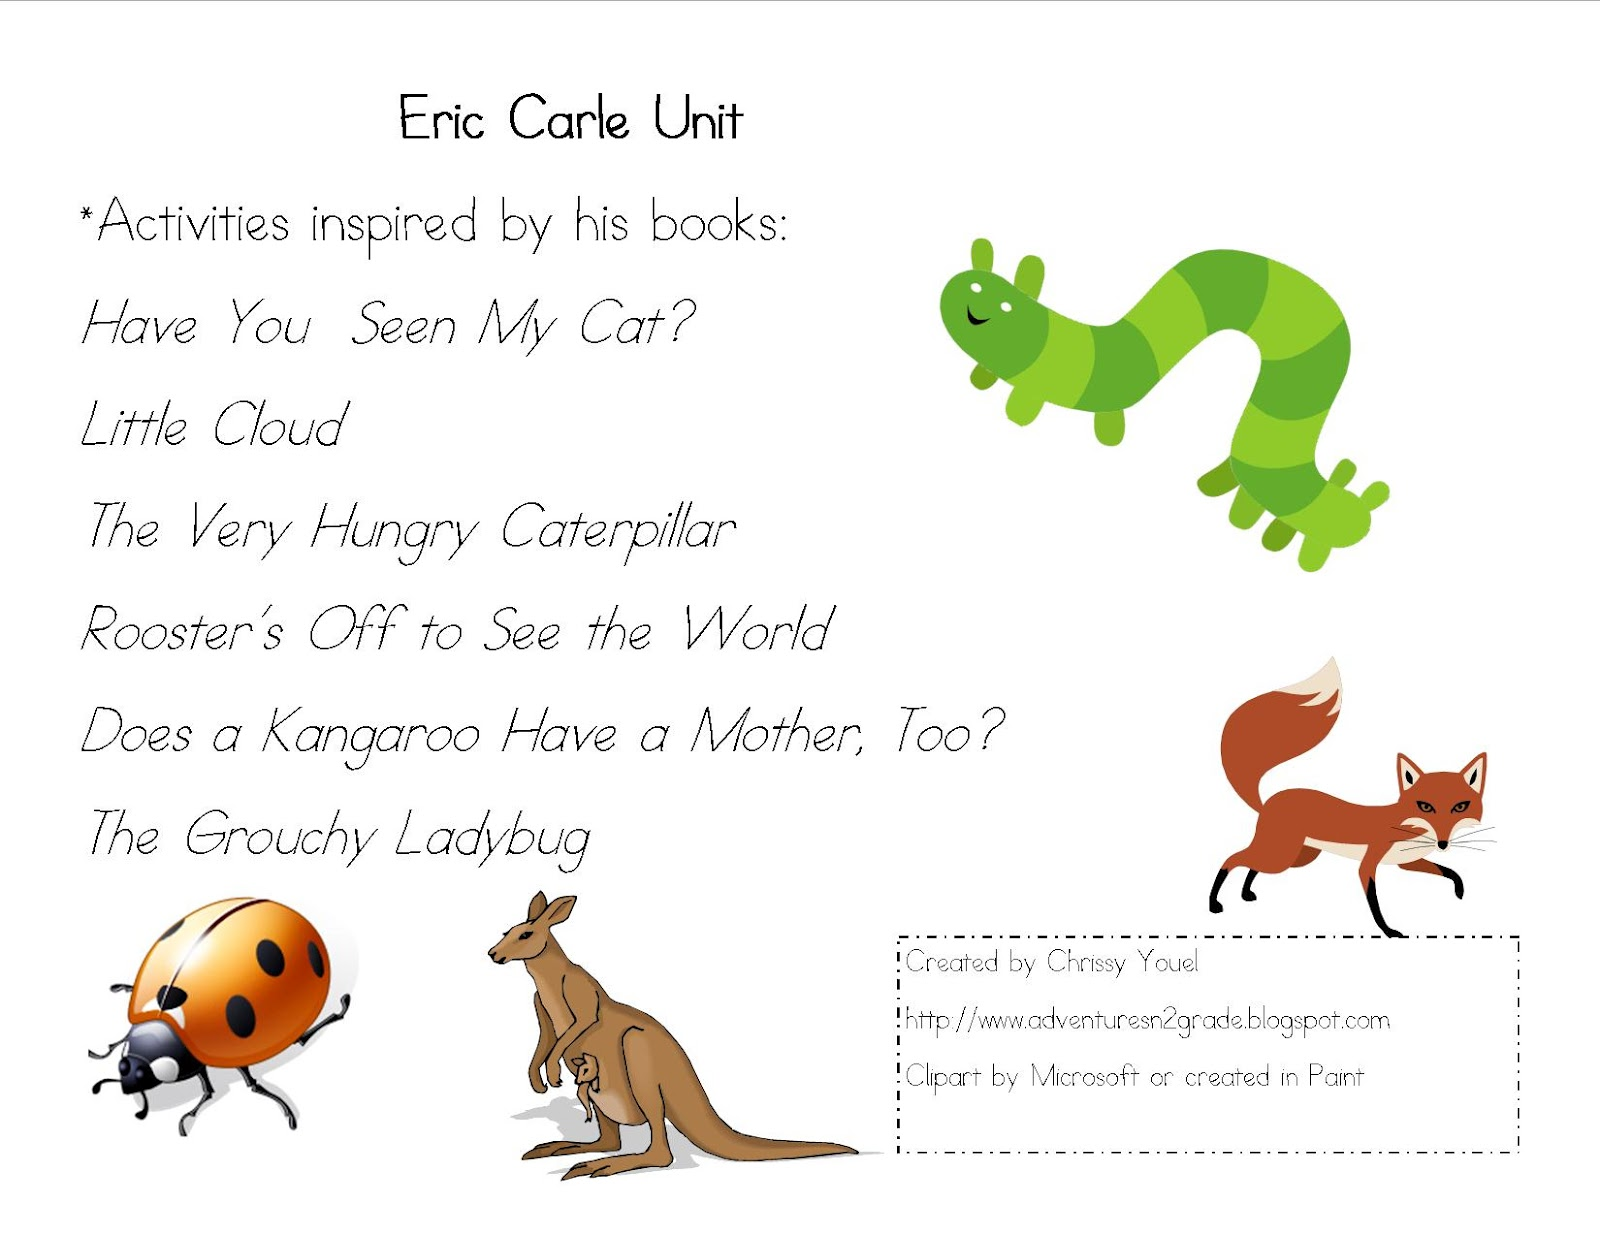 eric carle essays This lesson plan introduces teachers and parents to eric carle and his children's  books about nature suggestions for teaching observation and prediction, story.